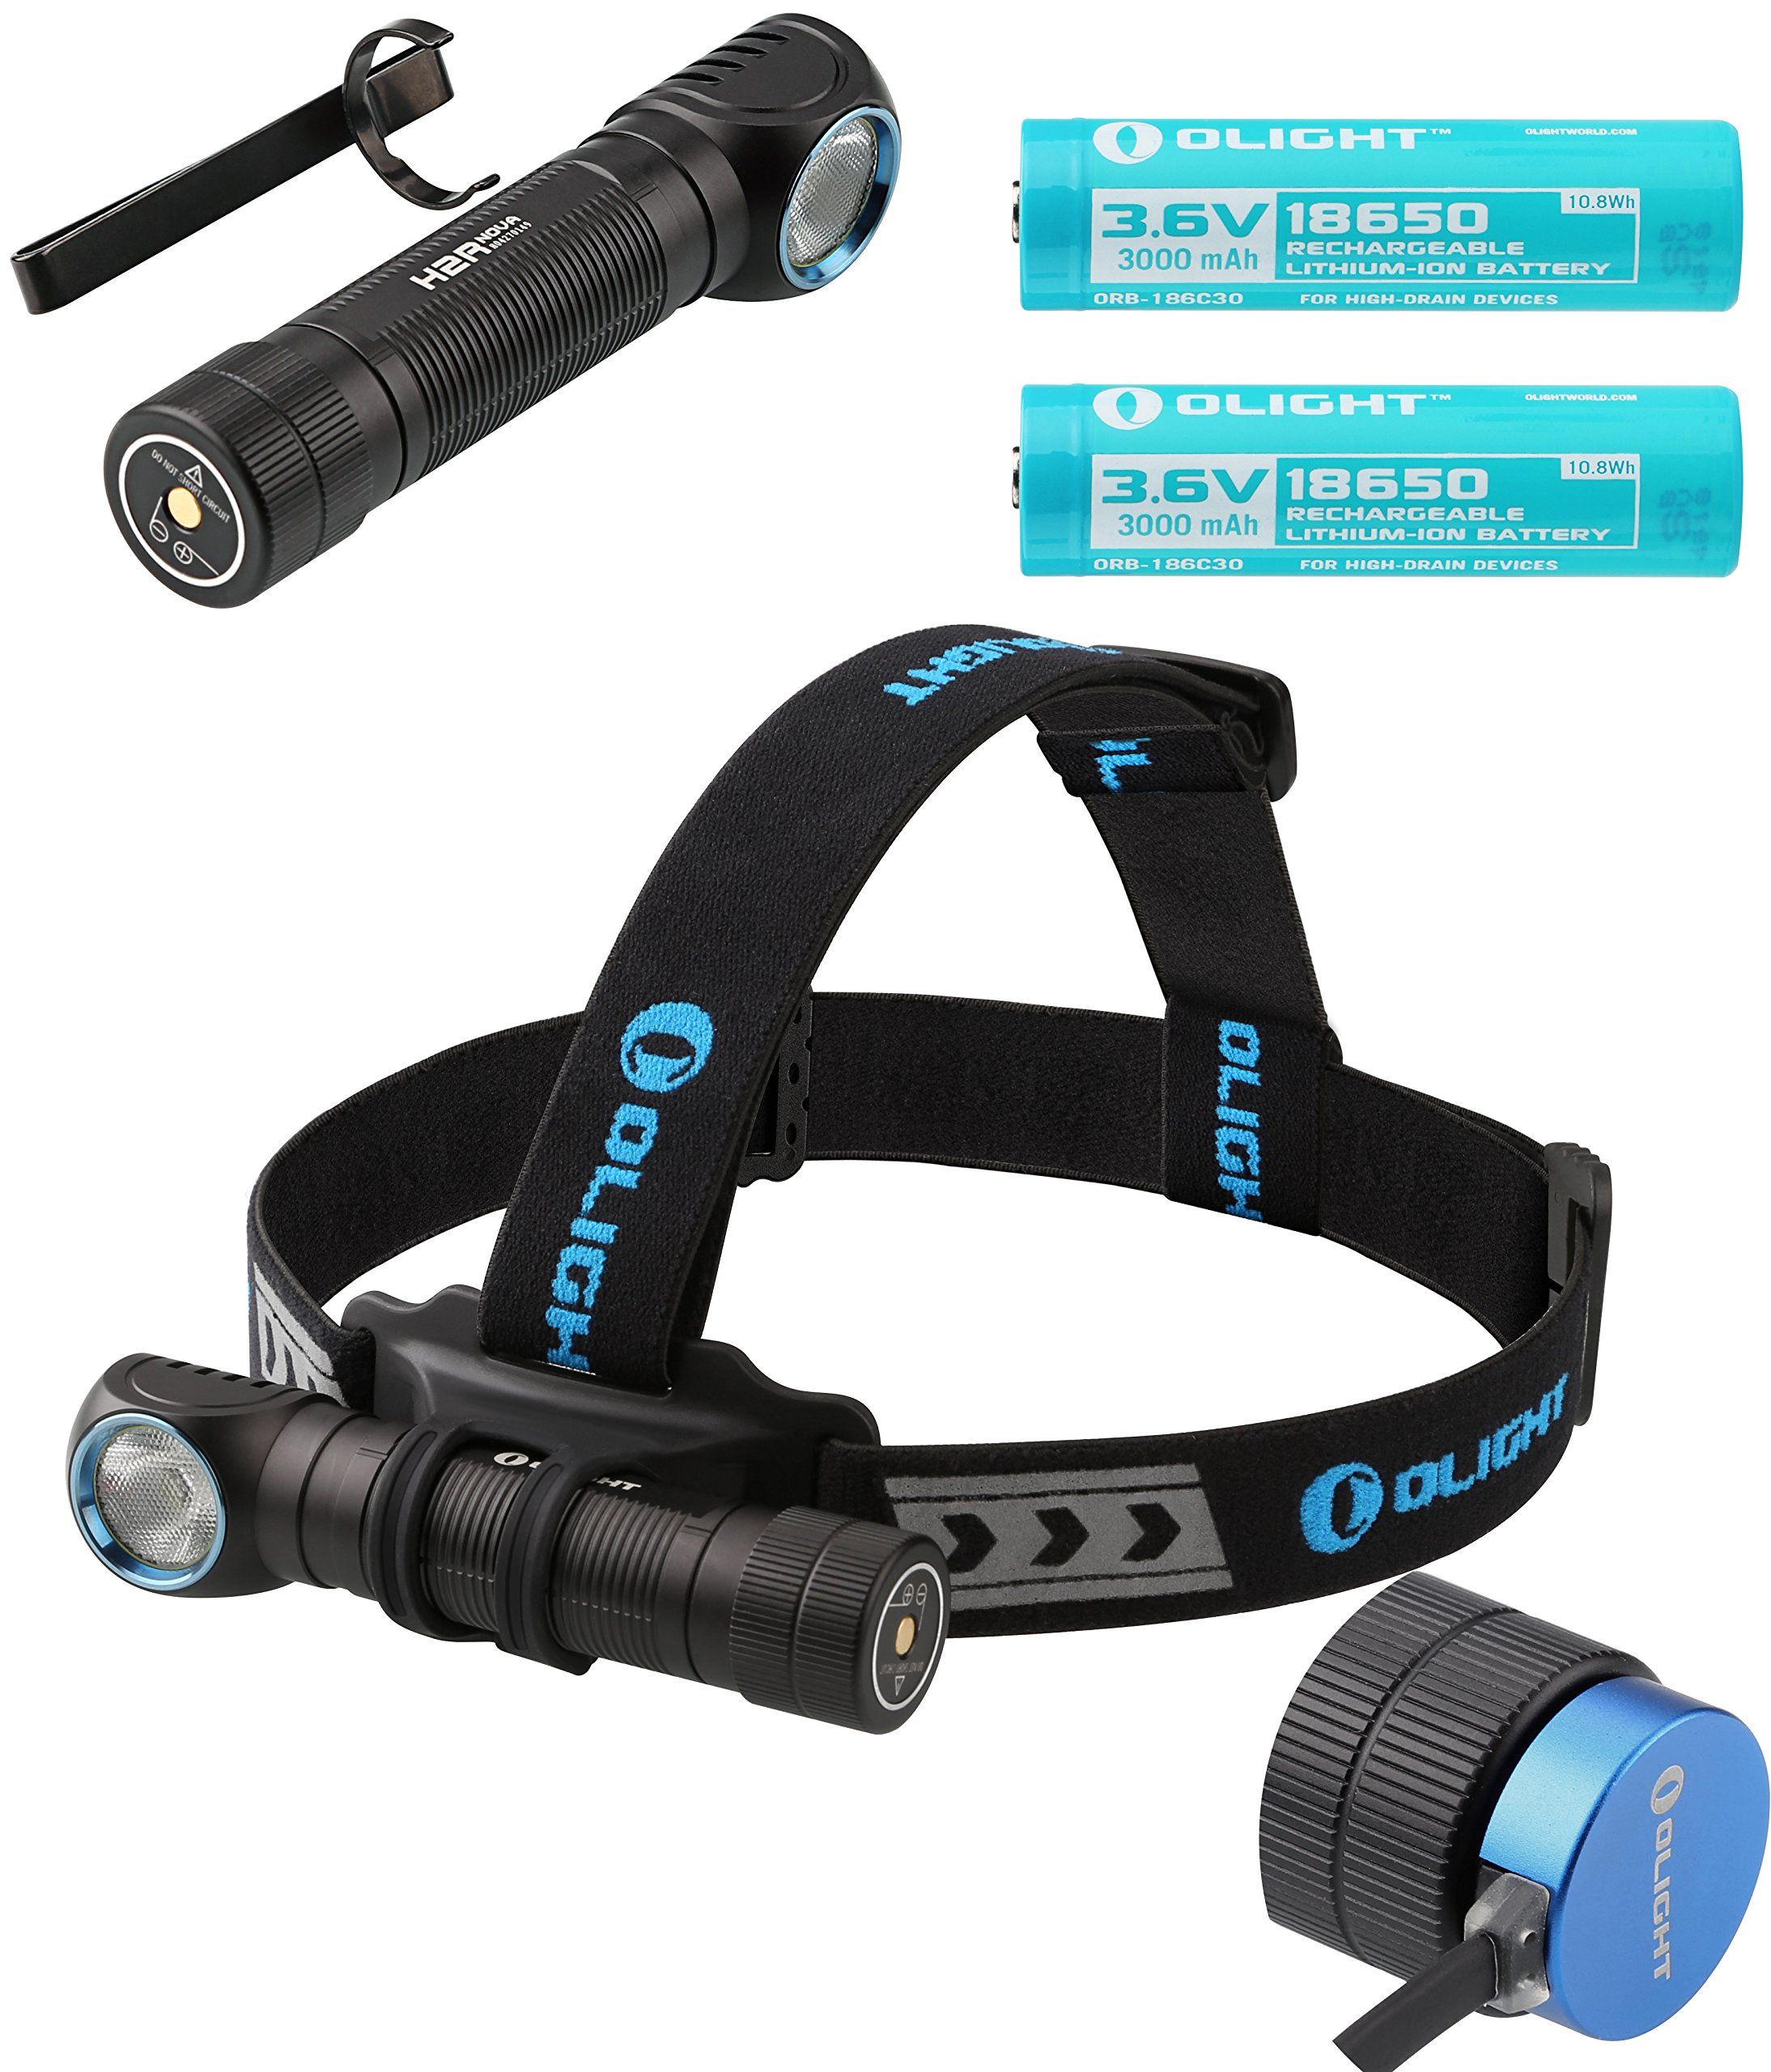 2 Batteries Kit: Olight H2R Nova 2300 Lumen LED Rechargeable Flashlight, Headlamp headband, Clip, two Customized 18650 Batteries, magnetic USB charging cable and LegionArm sticker (LED: Cool White)